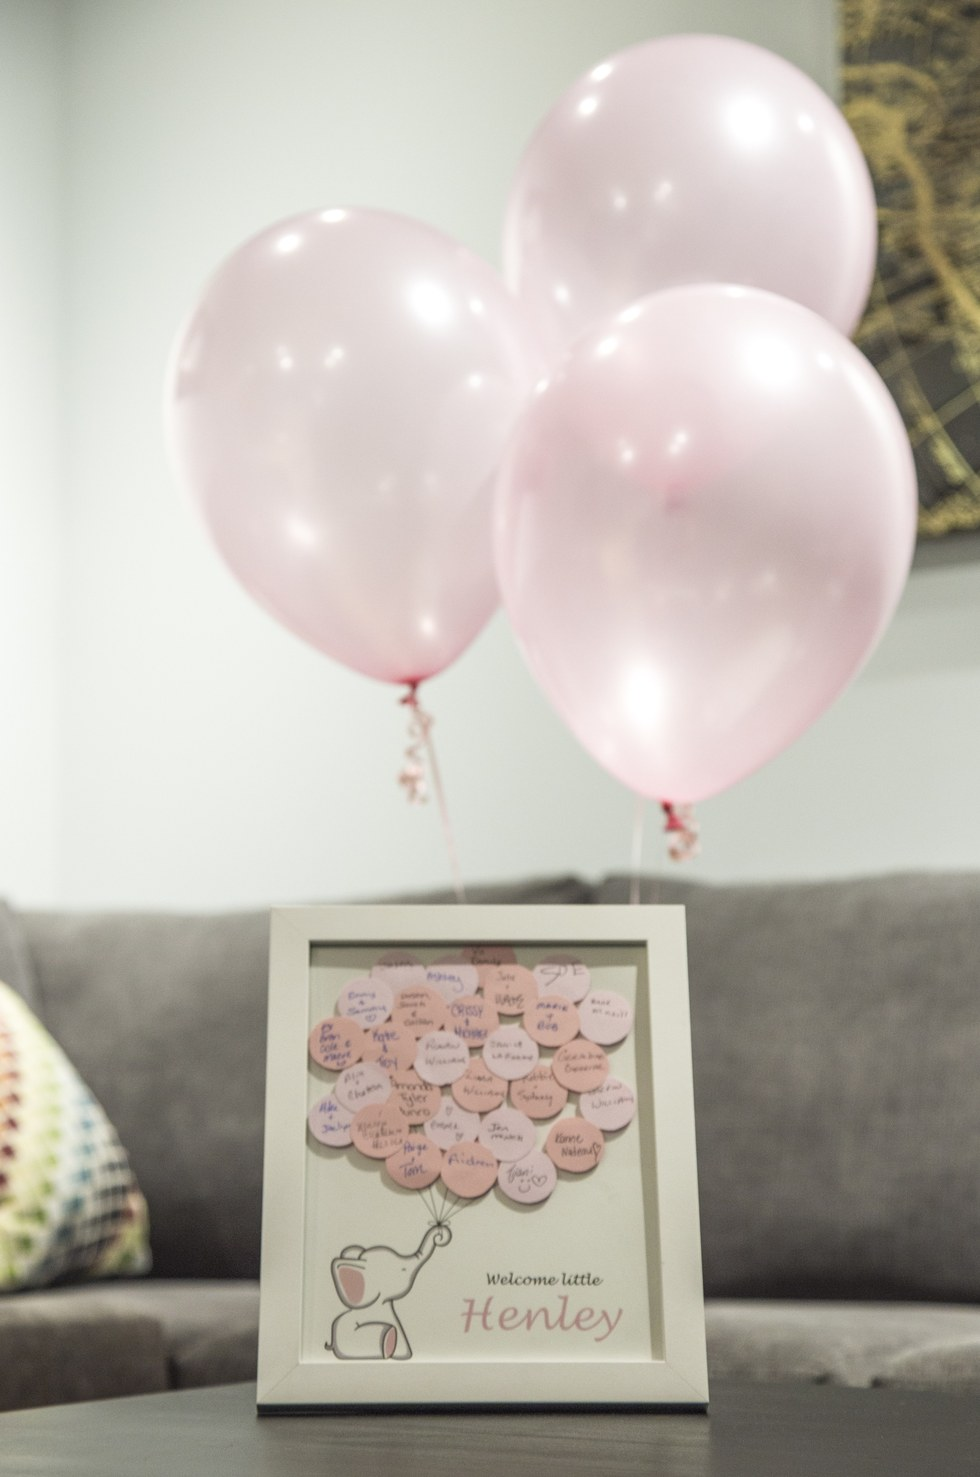 make them an adorable guest book they will never forget